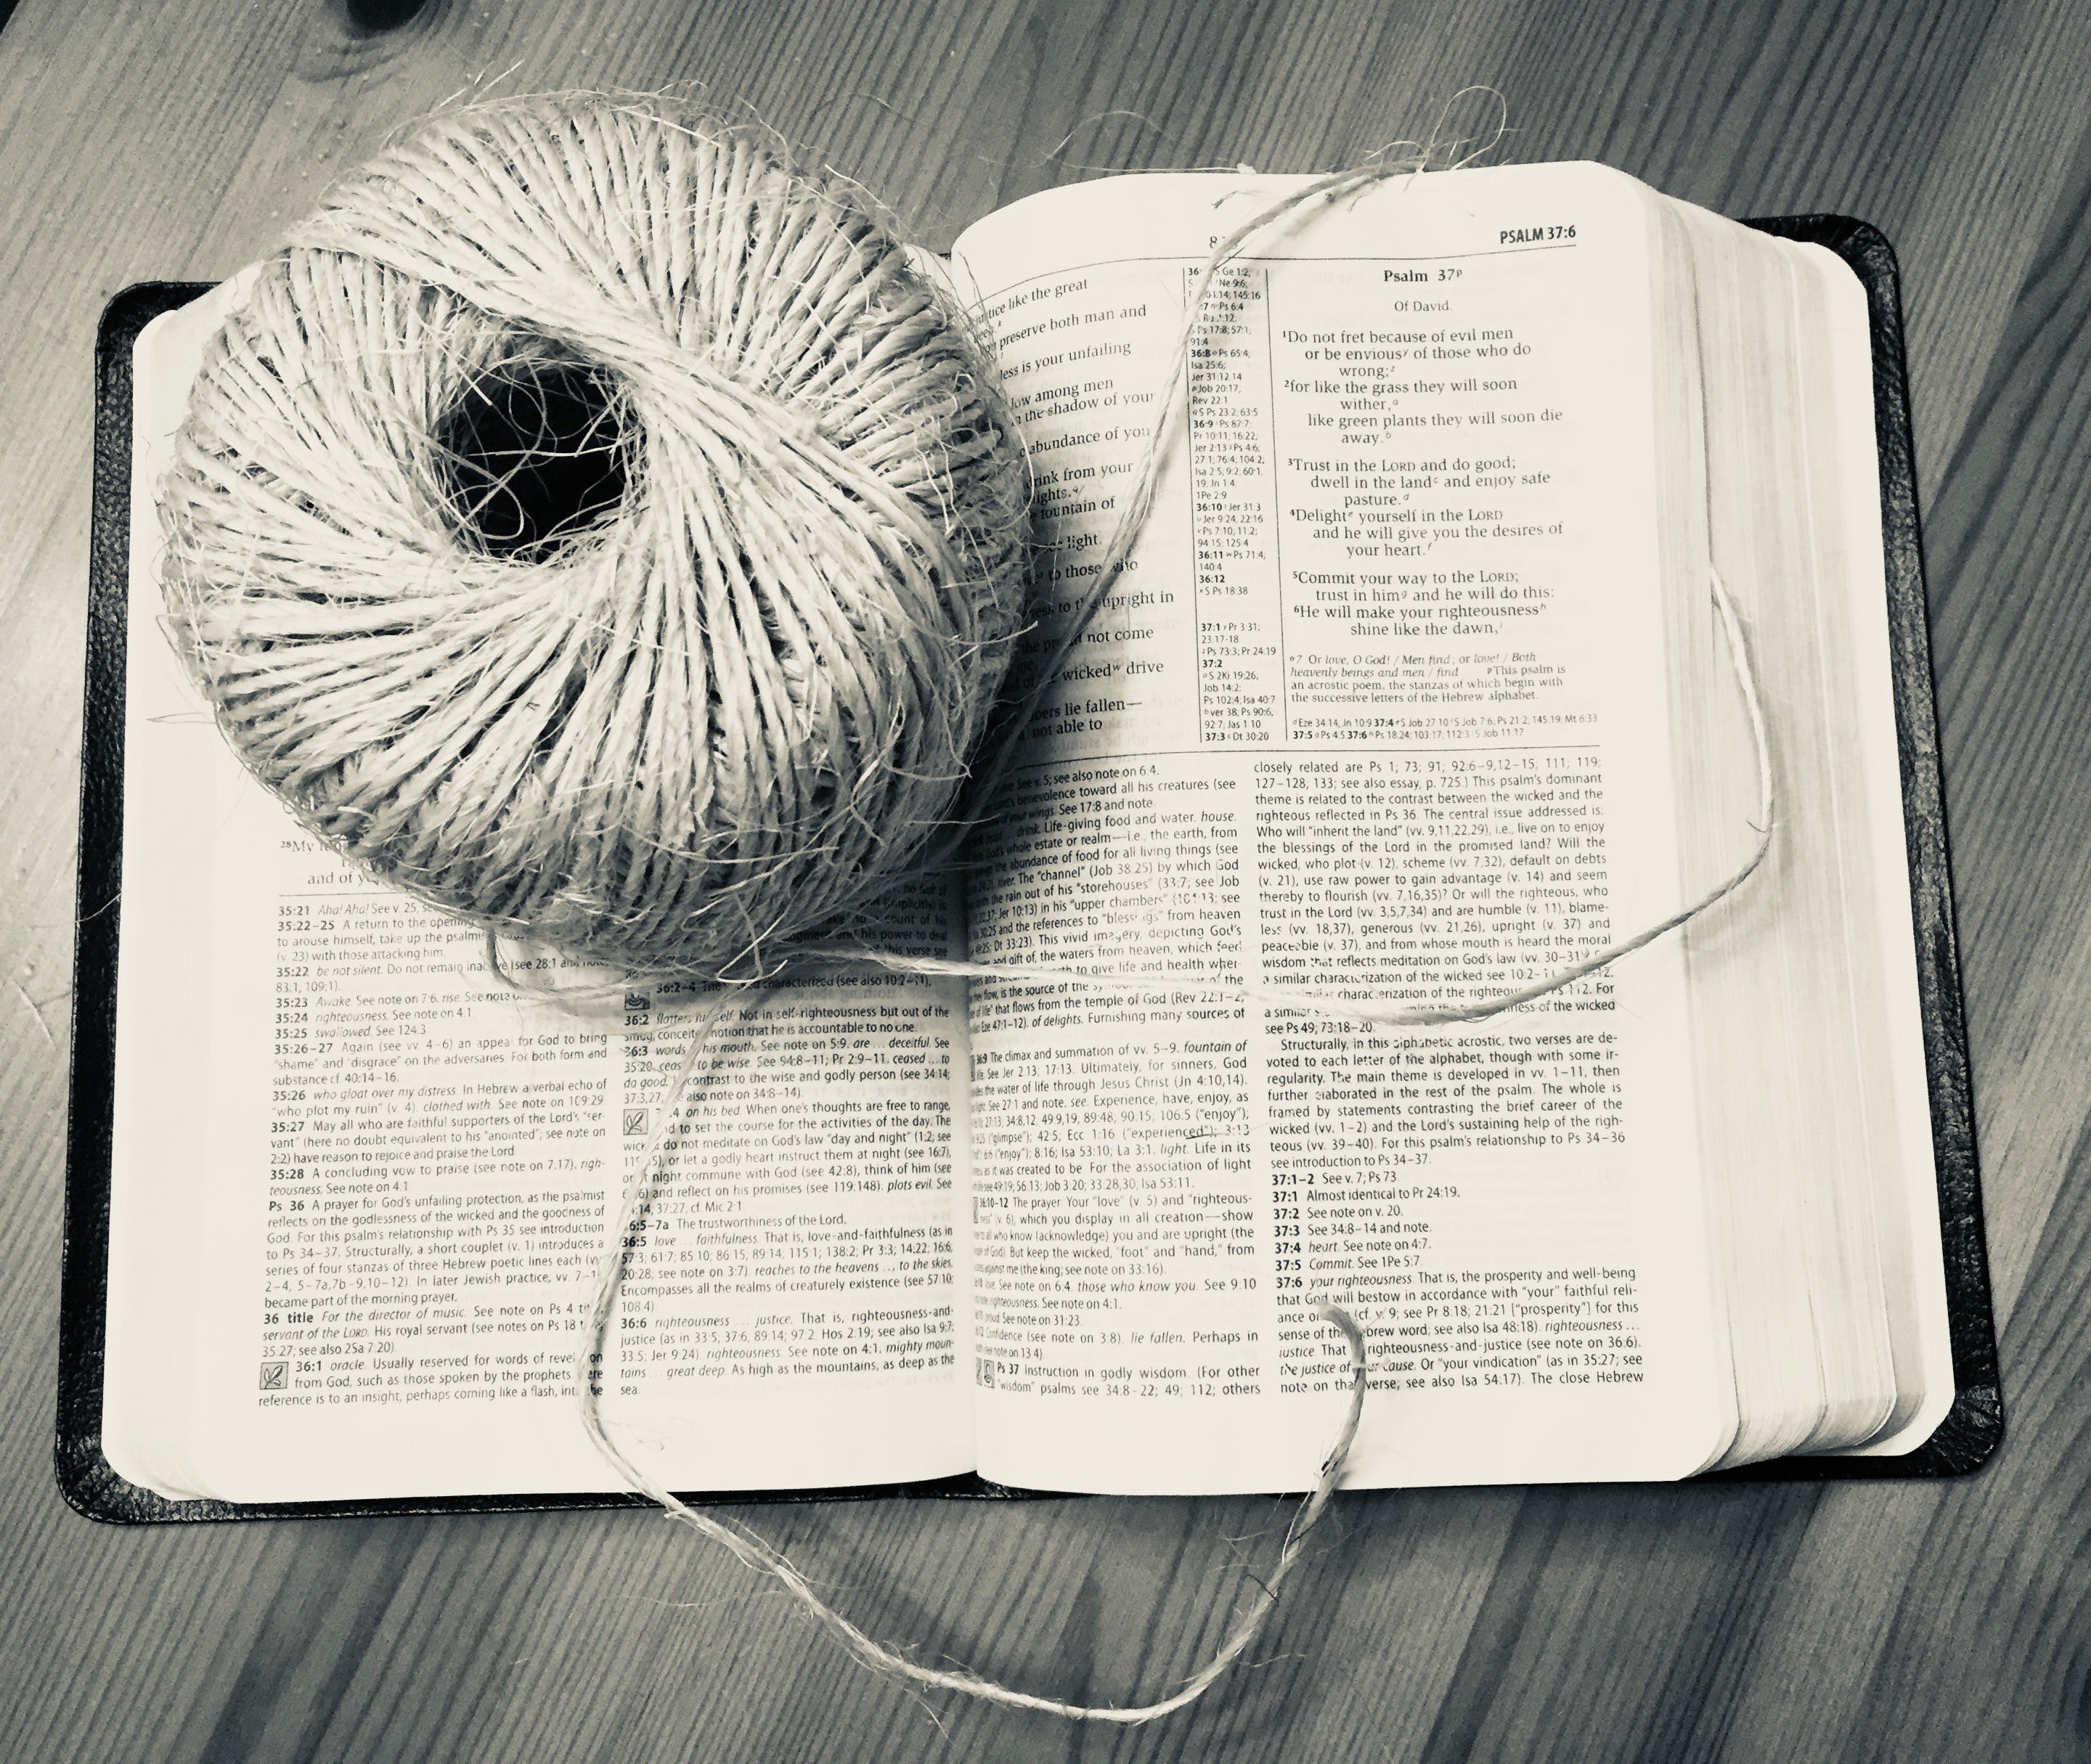 Free stock photo of ball of twine, ball of twine and Bible, bible, book and twine